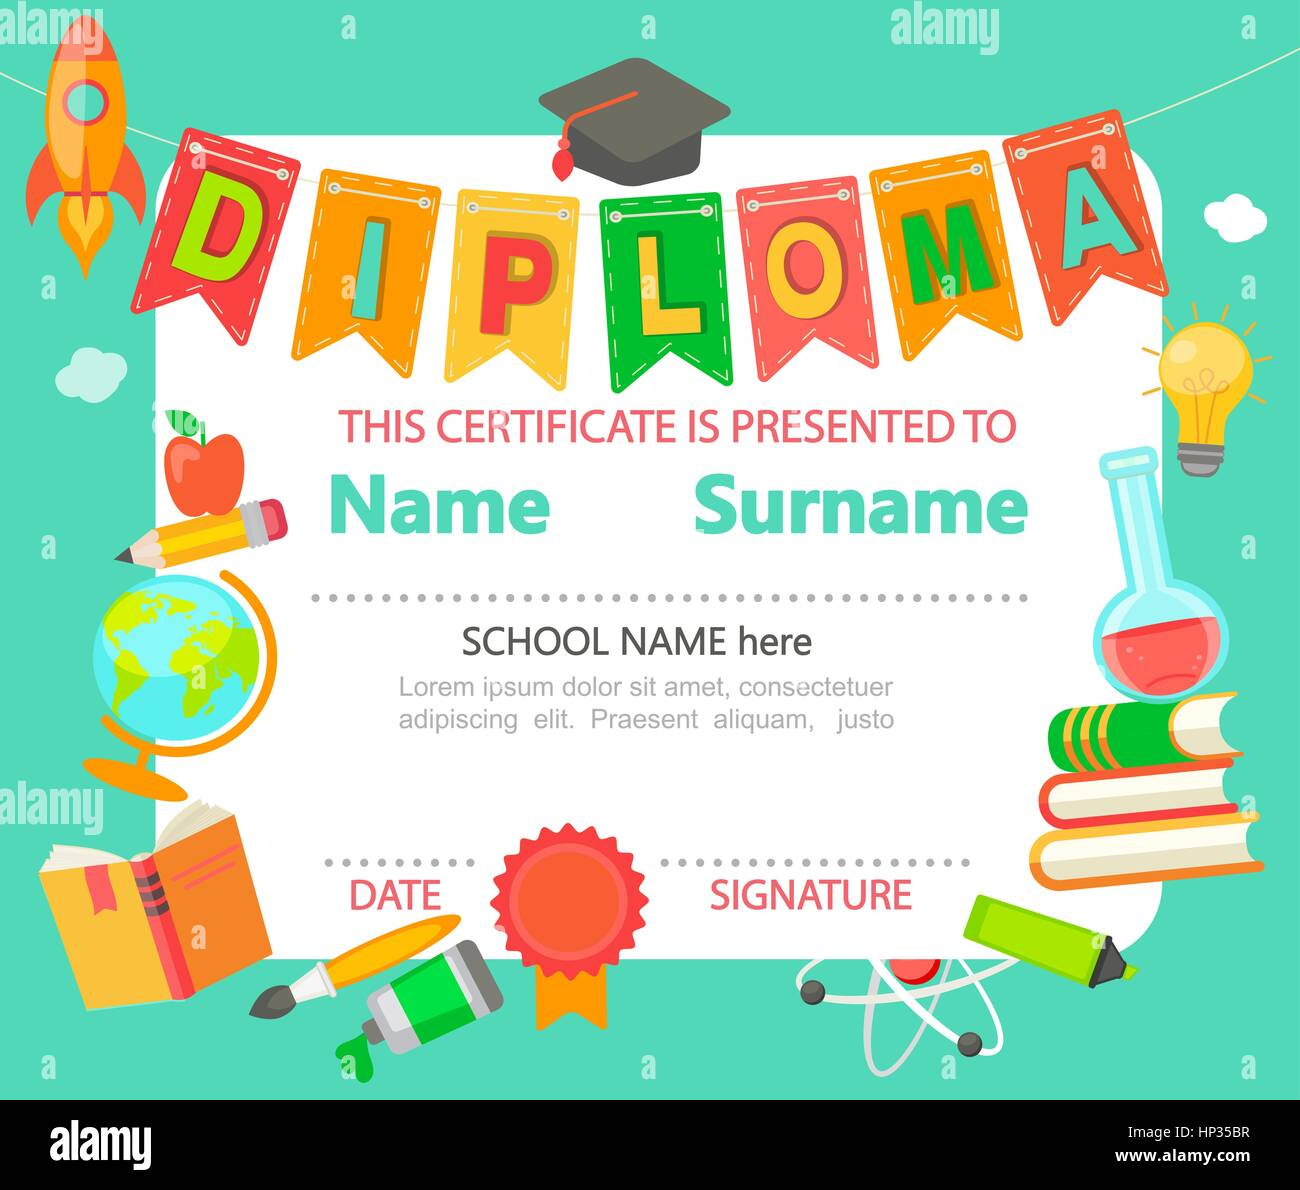 Kindergarten preschool elementary school kids diploma certificate kindergarten preschool elementary school kids diploma certificate background design template vector illustration xflitez Images